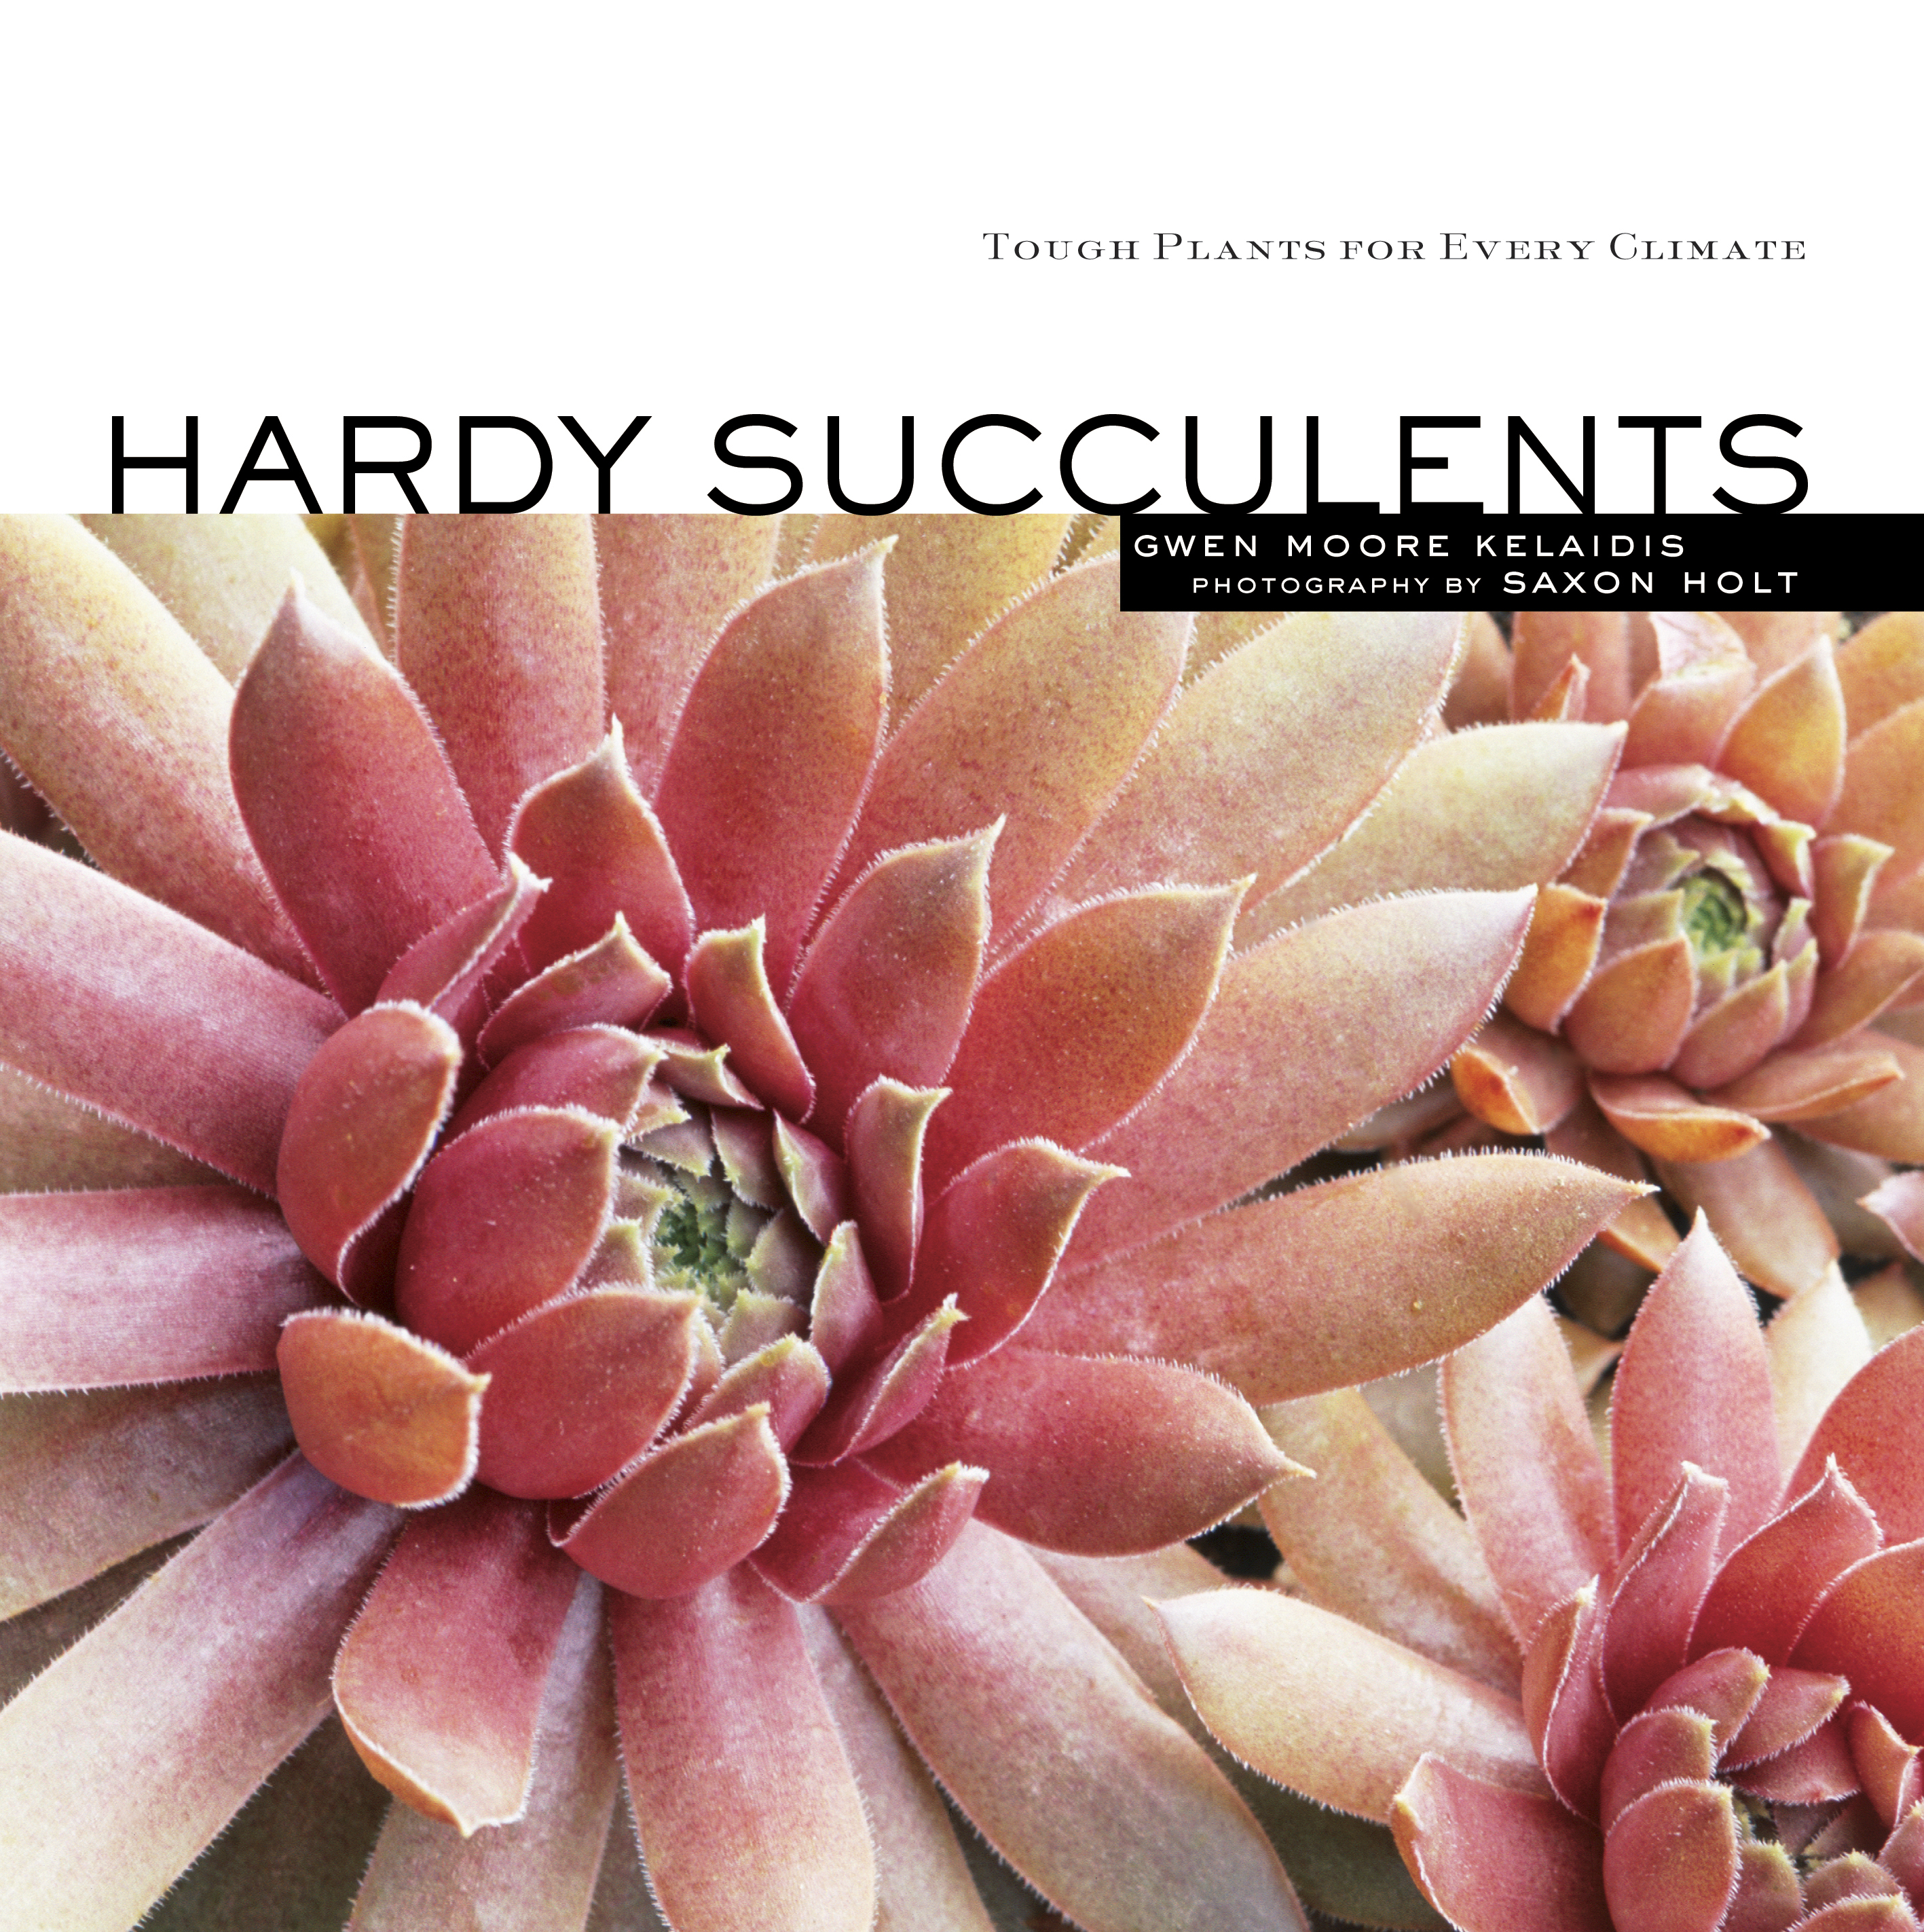 Hardy Succulents Tough Plants for Every Climate - Gwen Moore Kelaidis